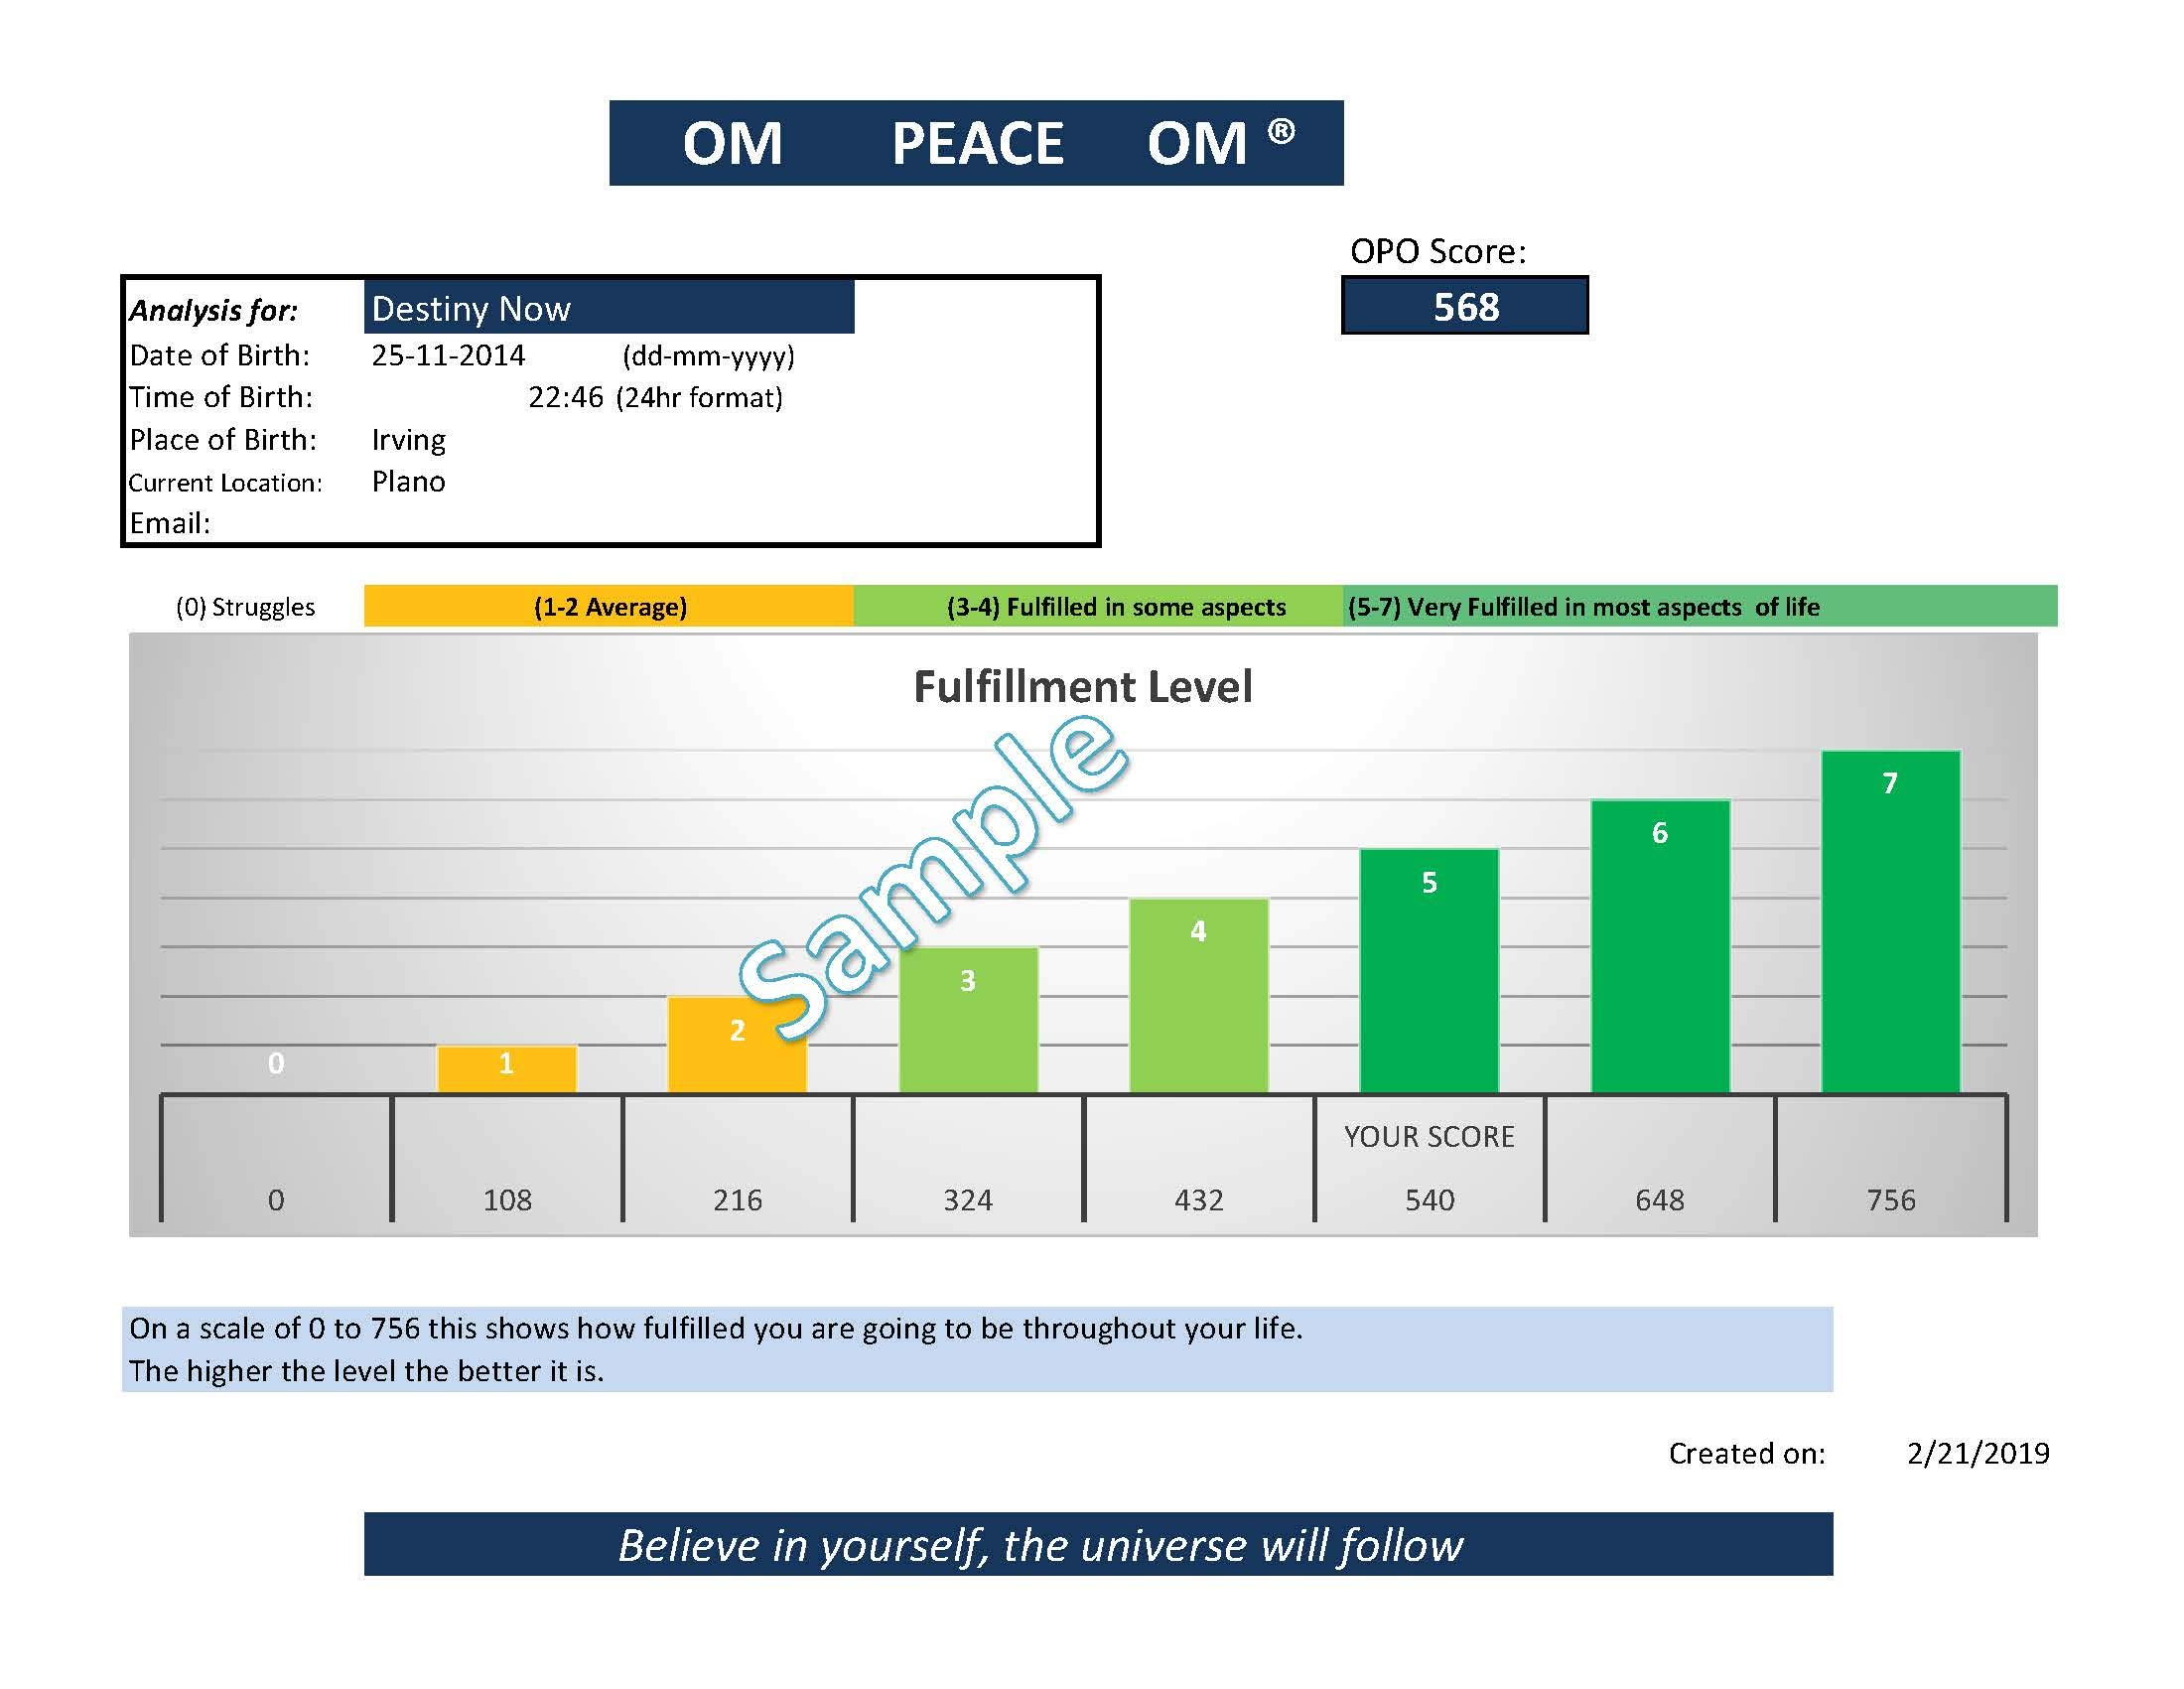 OMPEACEOM Fulfillment Score Report (based on Vedic Astrology